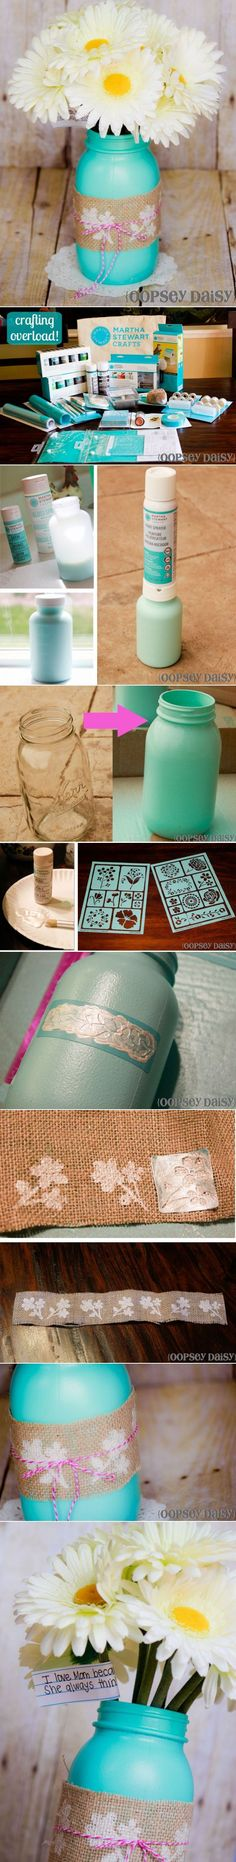 DIY Mothers Day Gift - Stenciled Mason Jar Vase